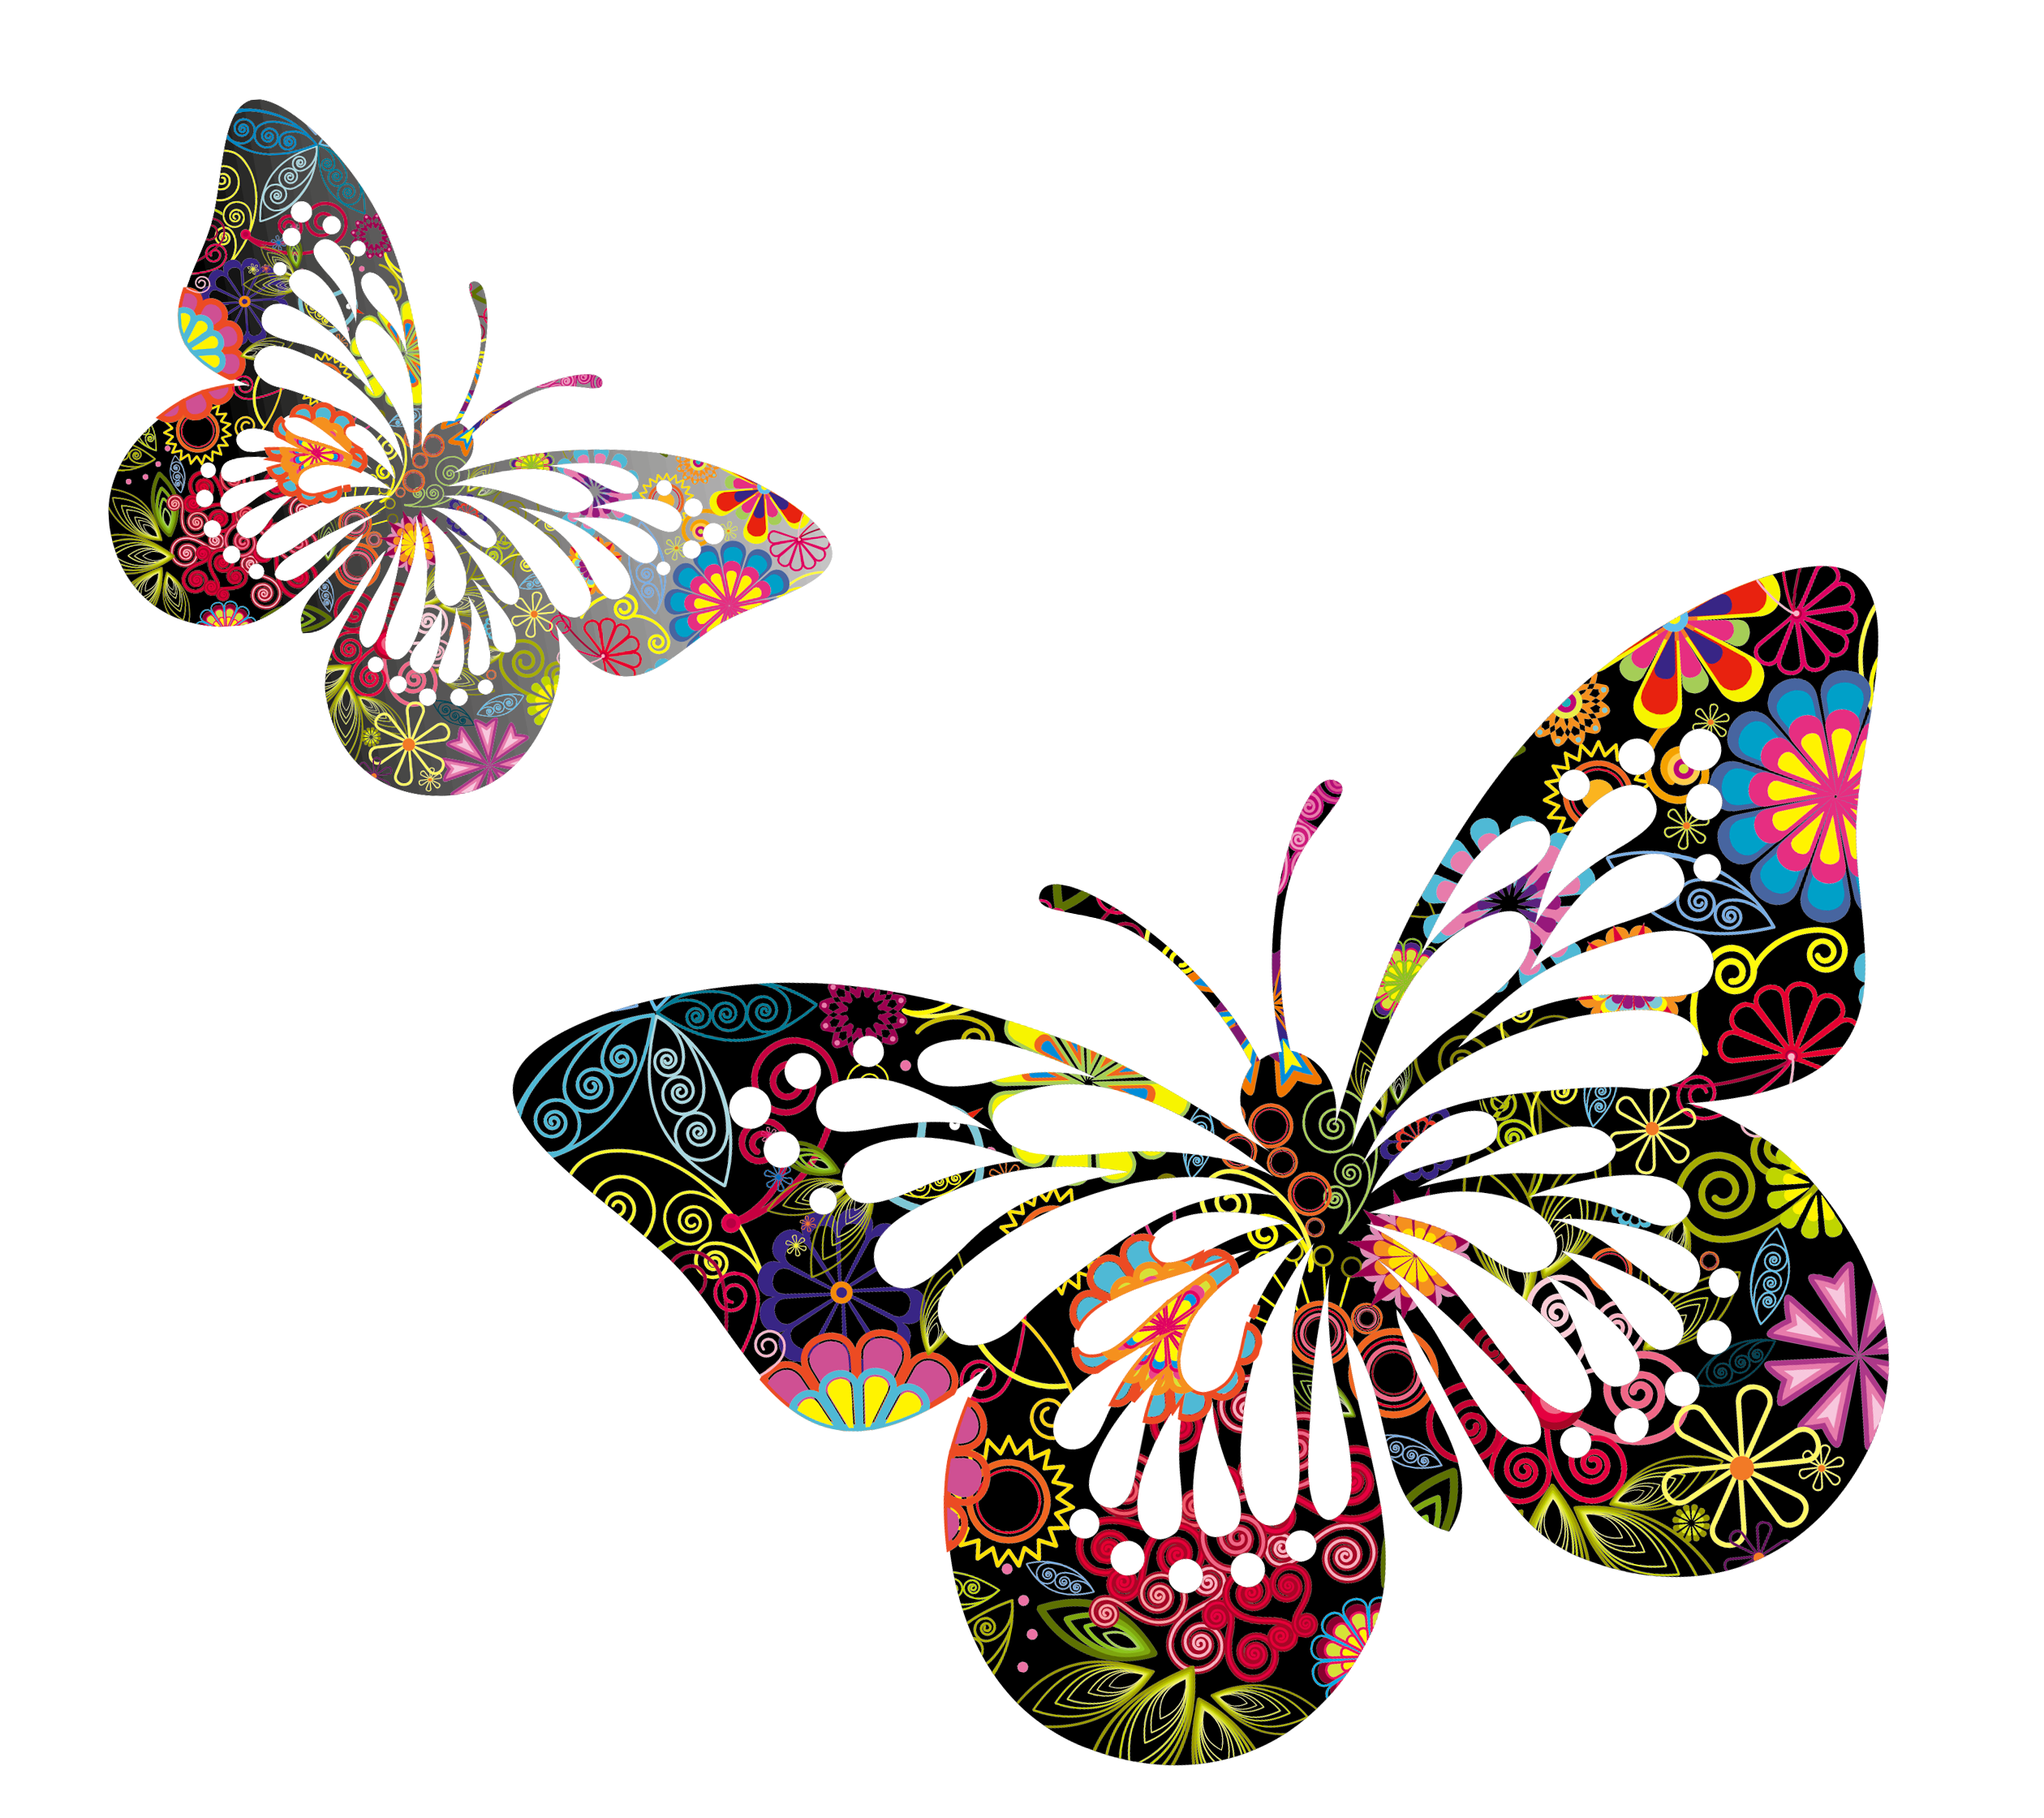 Transparent butterflies png pinterest. Dragonfly clipart psychedelic